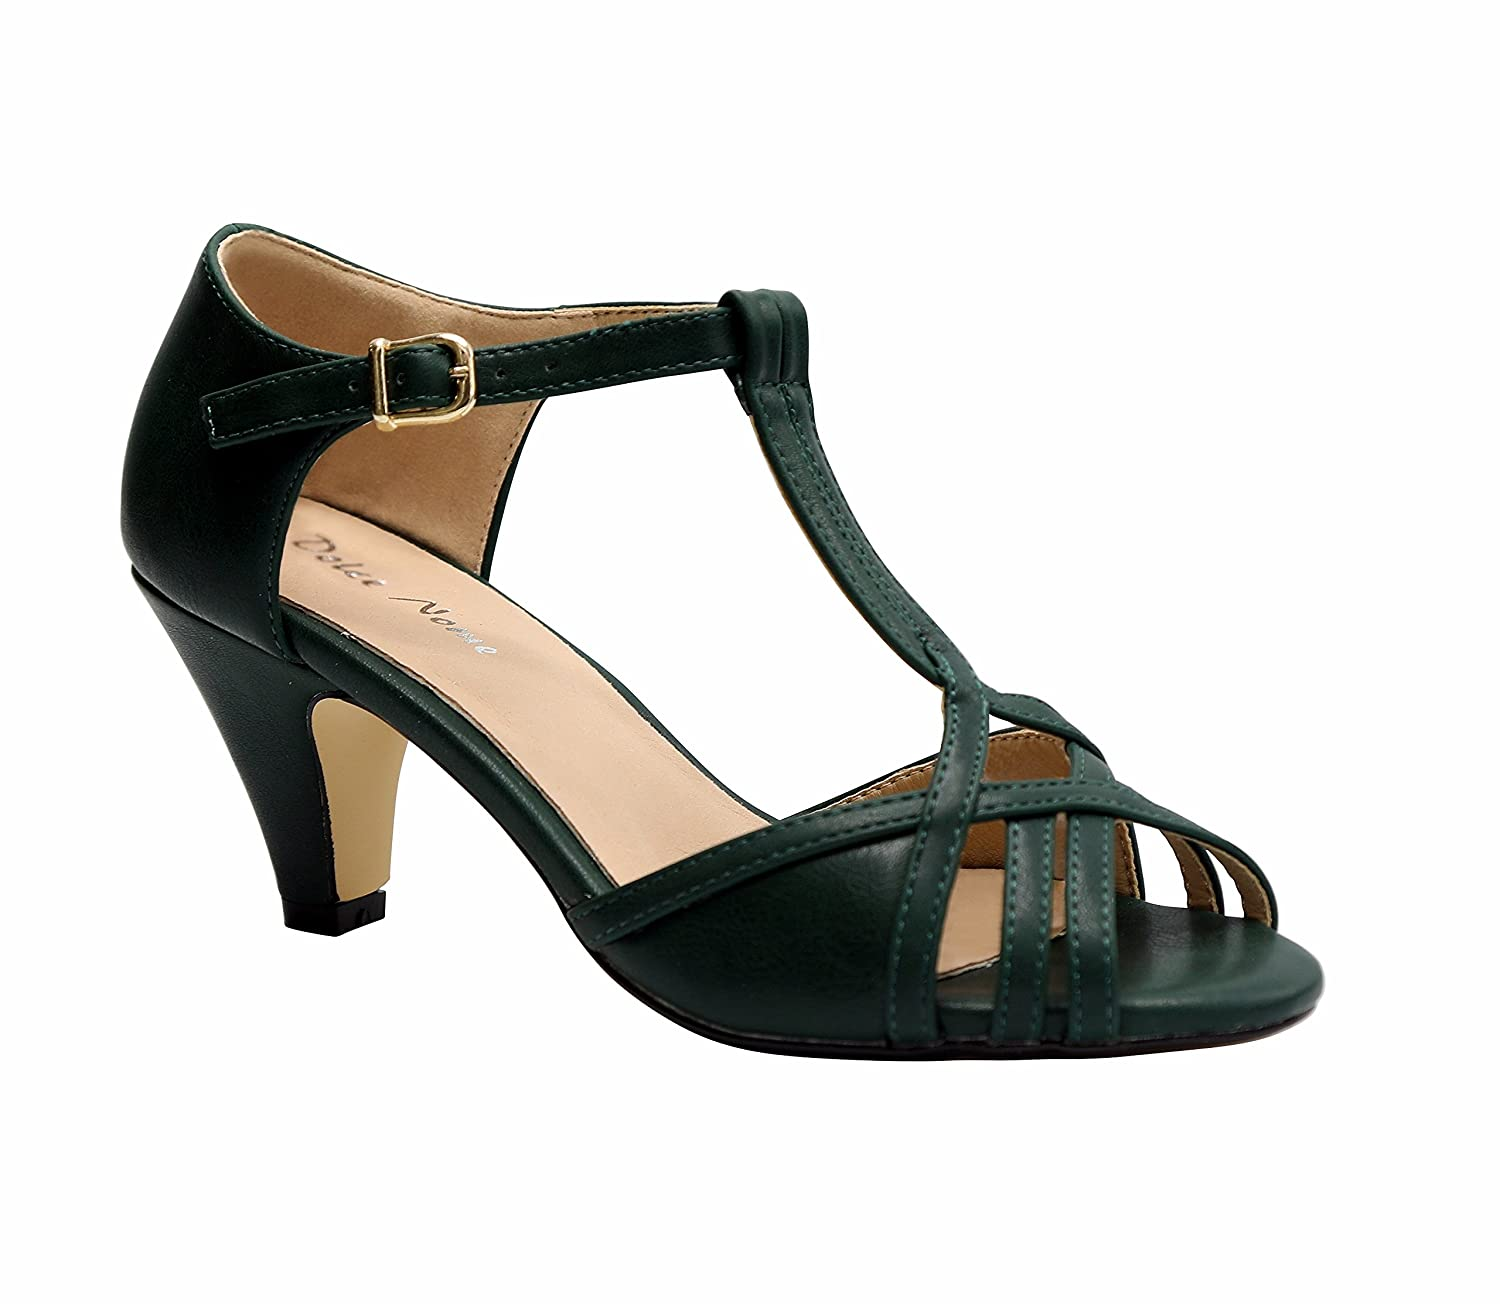 Dolce Nome Open Toe Heels Women's Designer Shoes Italian Style Well Constructed Ladies Fancy Shoes B07CBFP8XV 36 M EU|Green